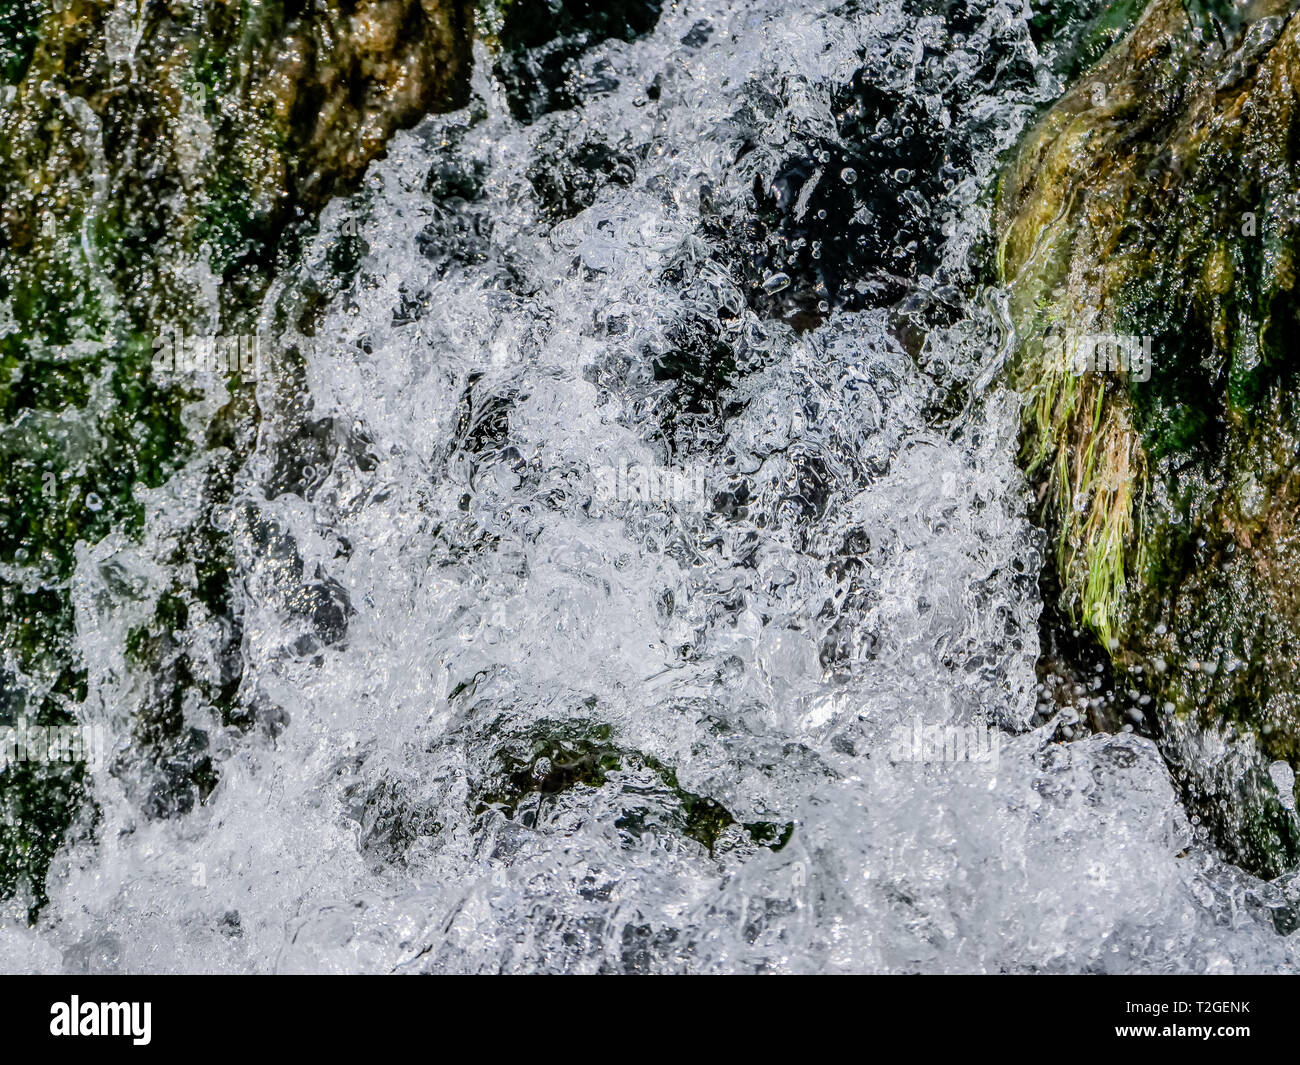 Mountain waterfall with clean and fresh water. - Stock Image